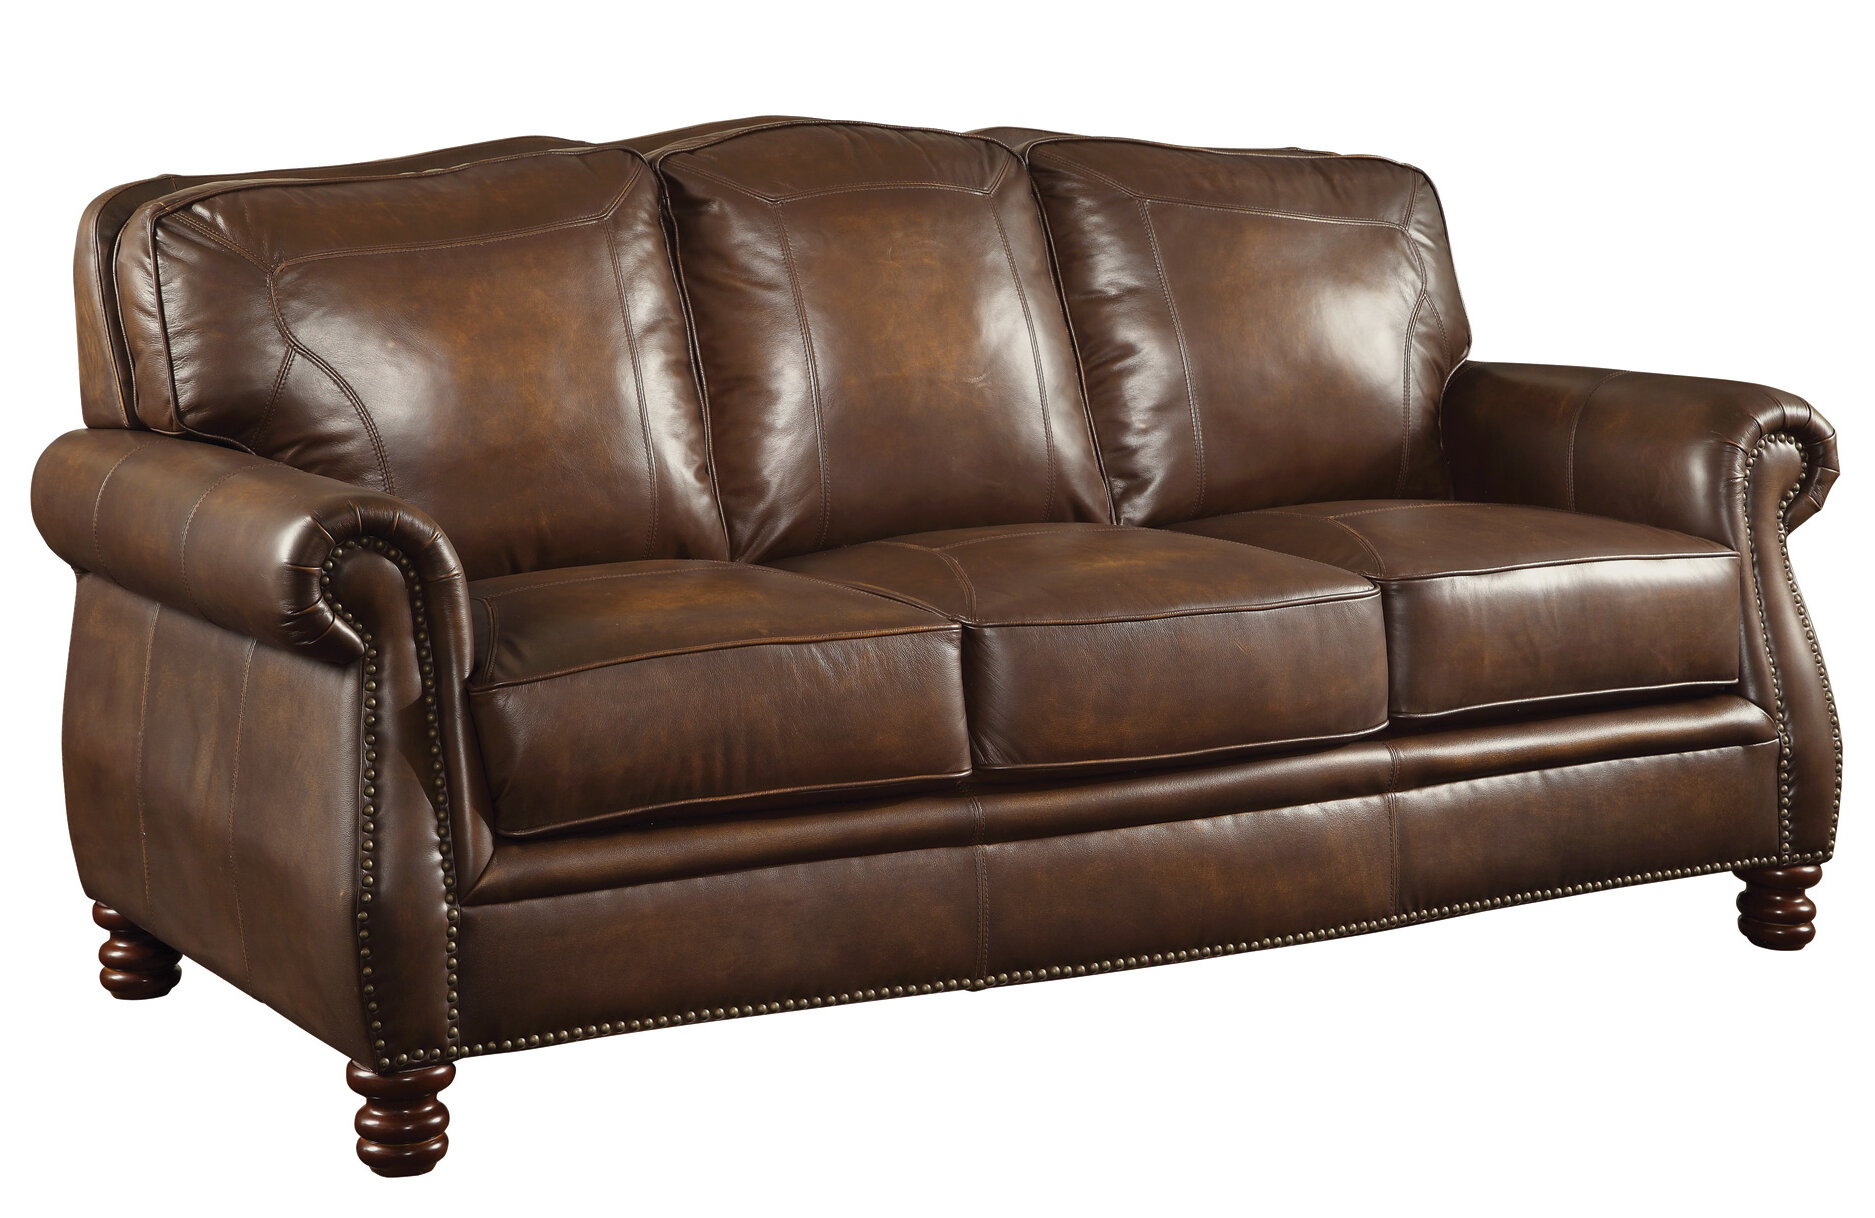 Darby Home Co Linglestown Leather Sofa & Reviews | Wayfair